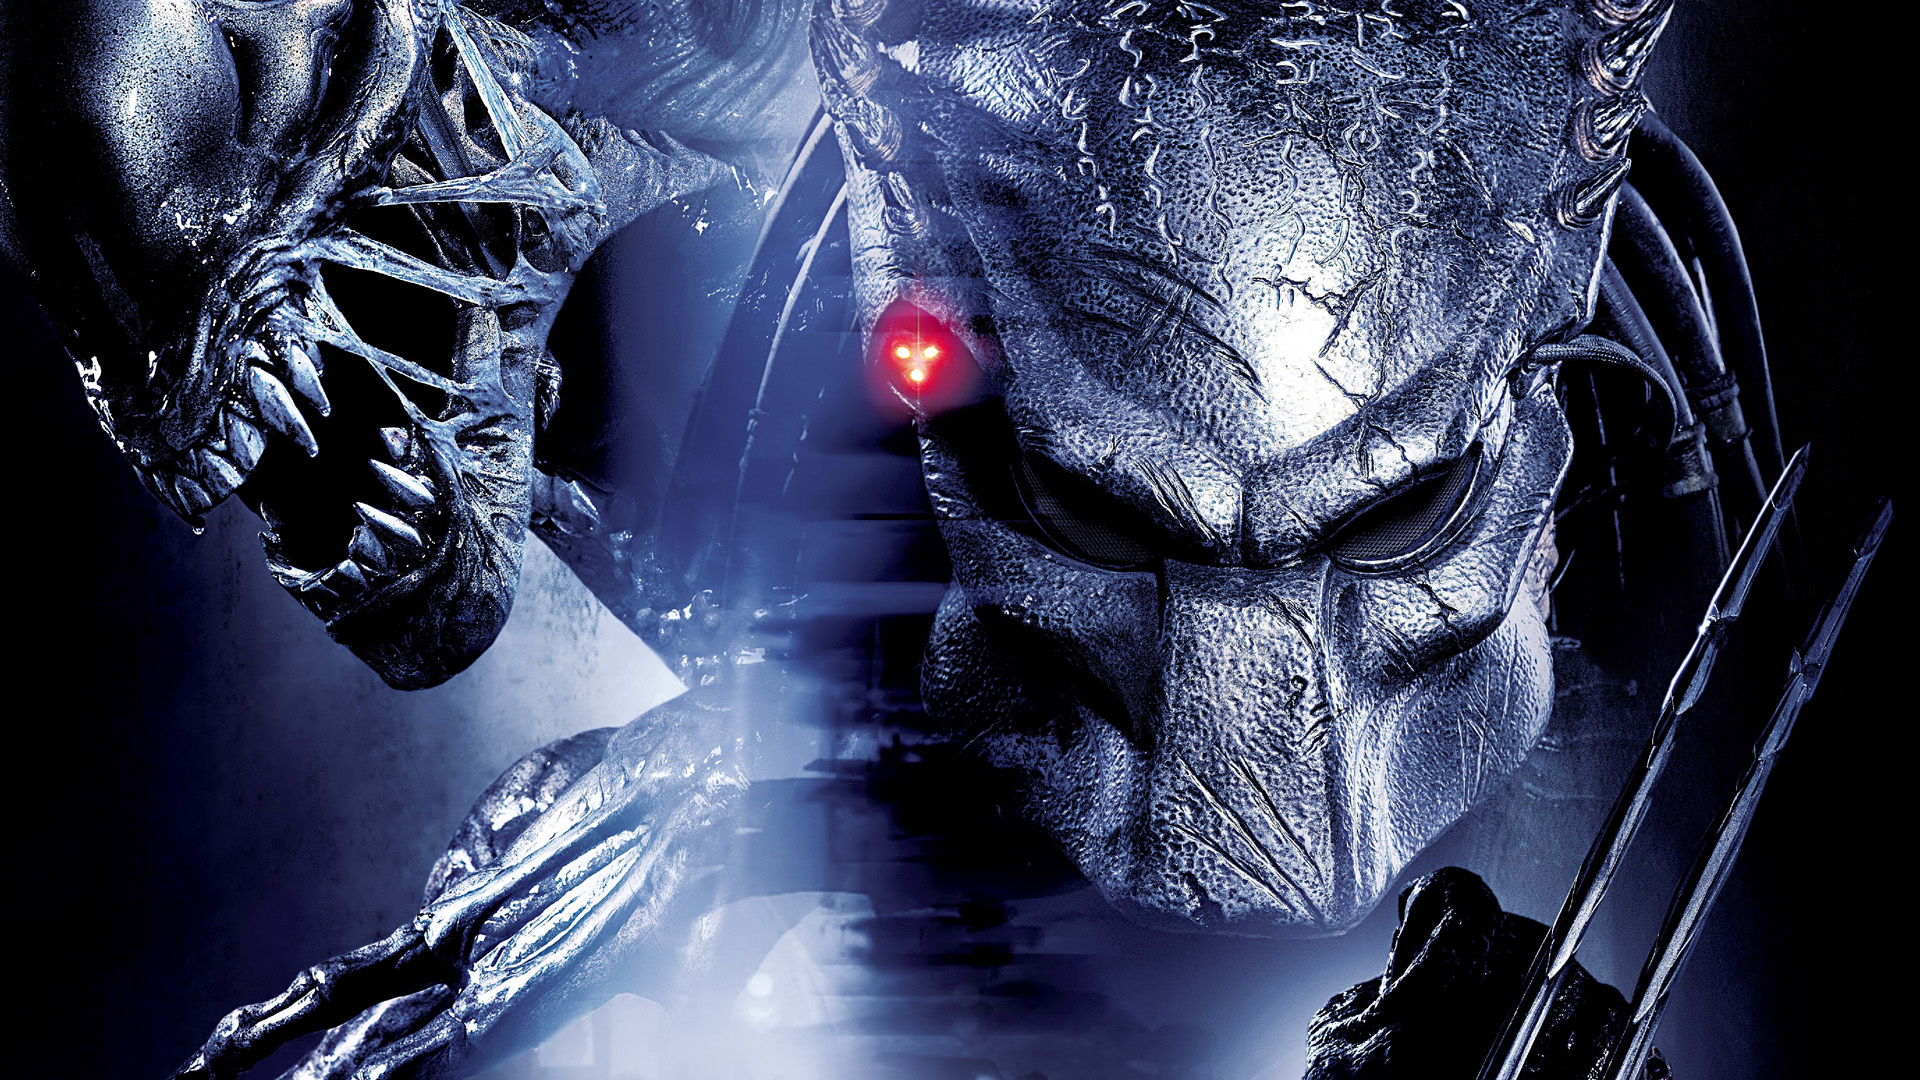 Alien Vs Predator Wallpaper Hd Aliens Vs. Pred...